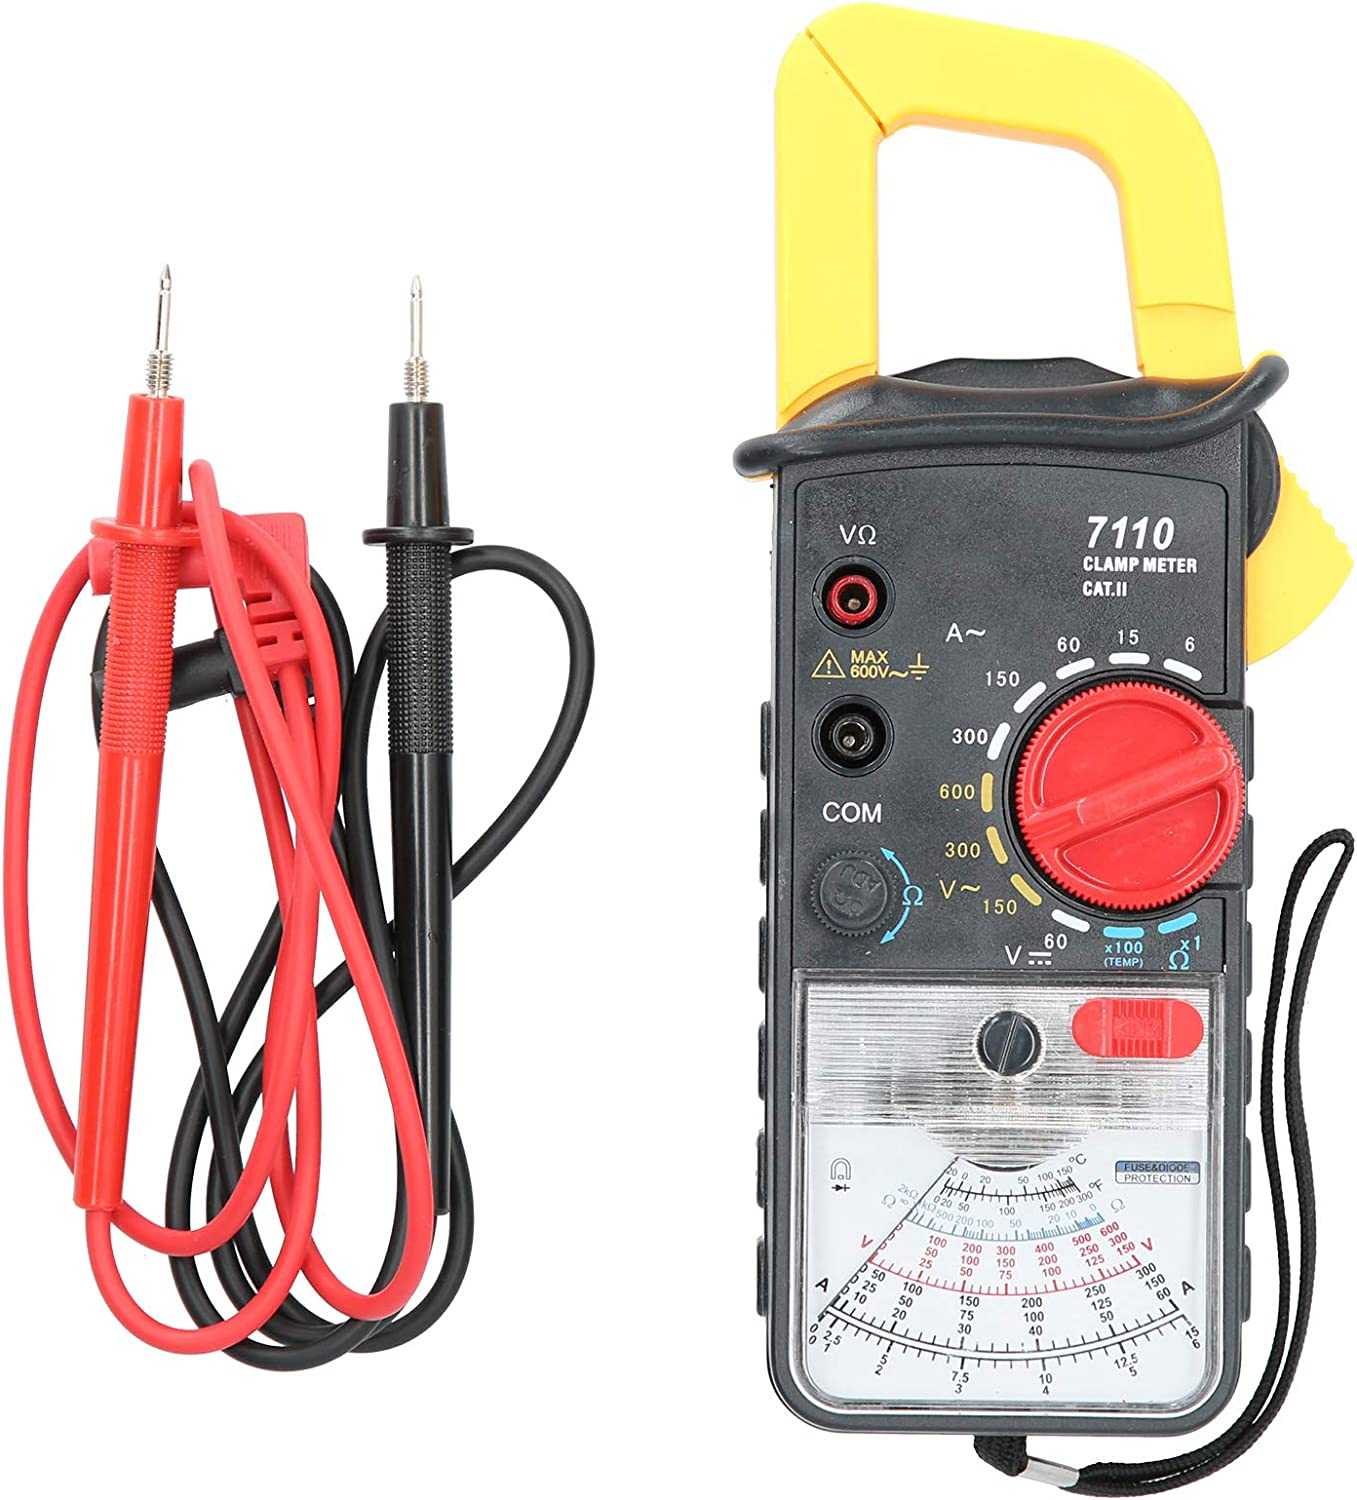 Clamp Meter Multimeter Accurate Voltage Analog Handheld Super popular specialty Cheap super special price store